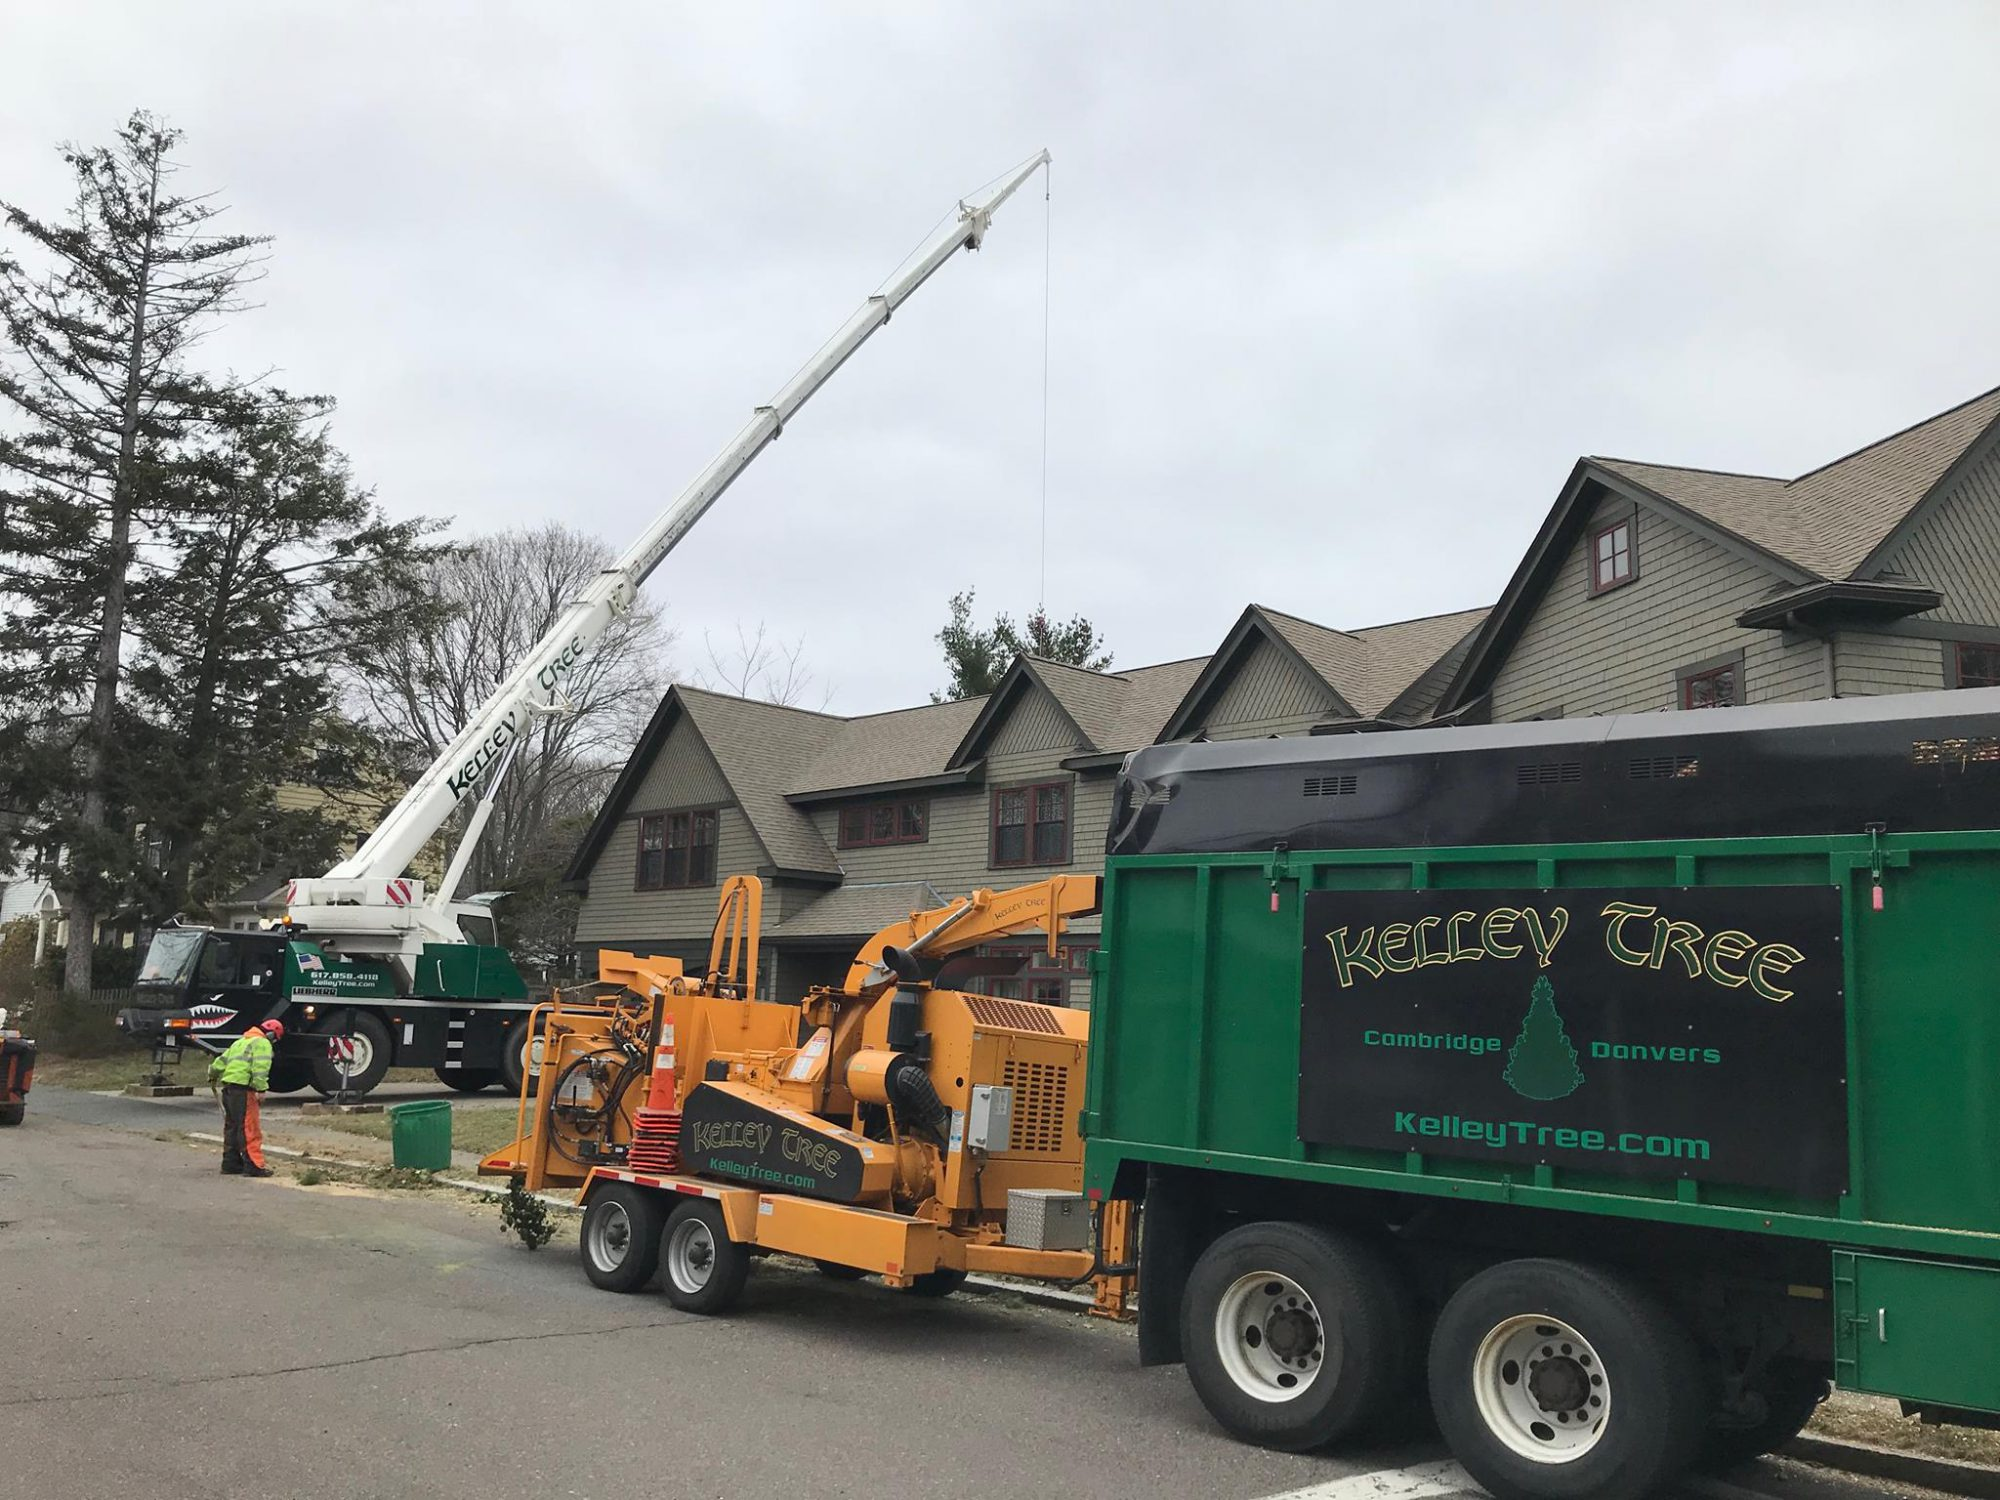 tree care equipment parked outside a home